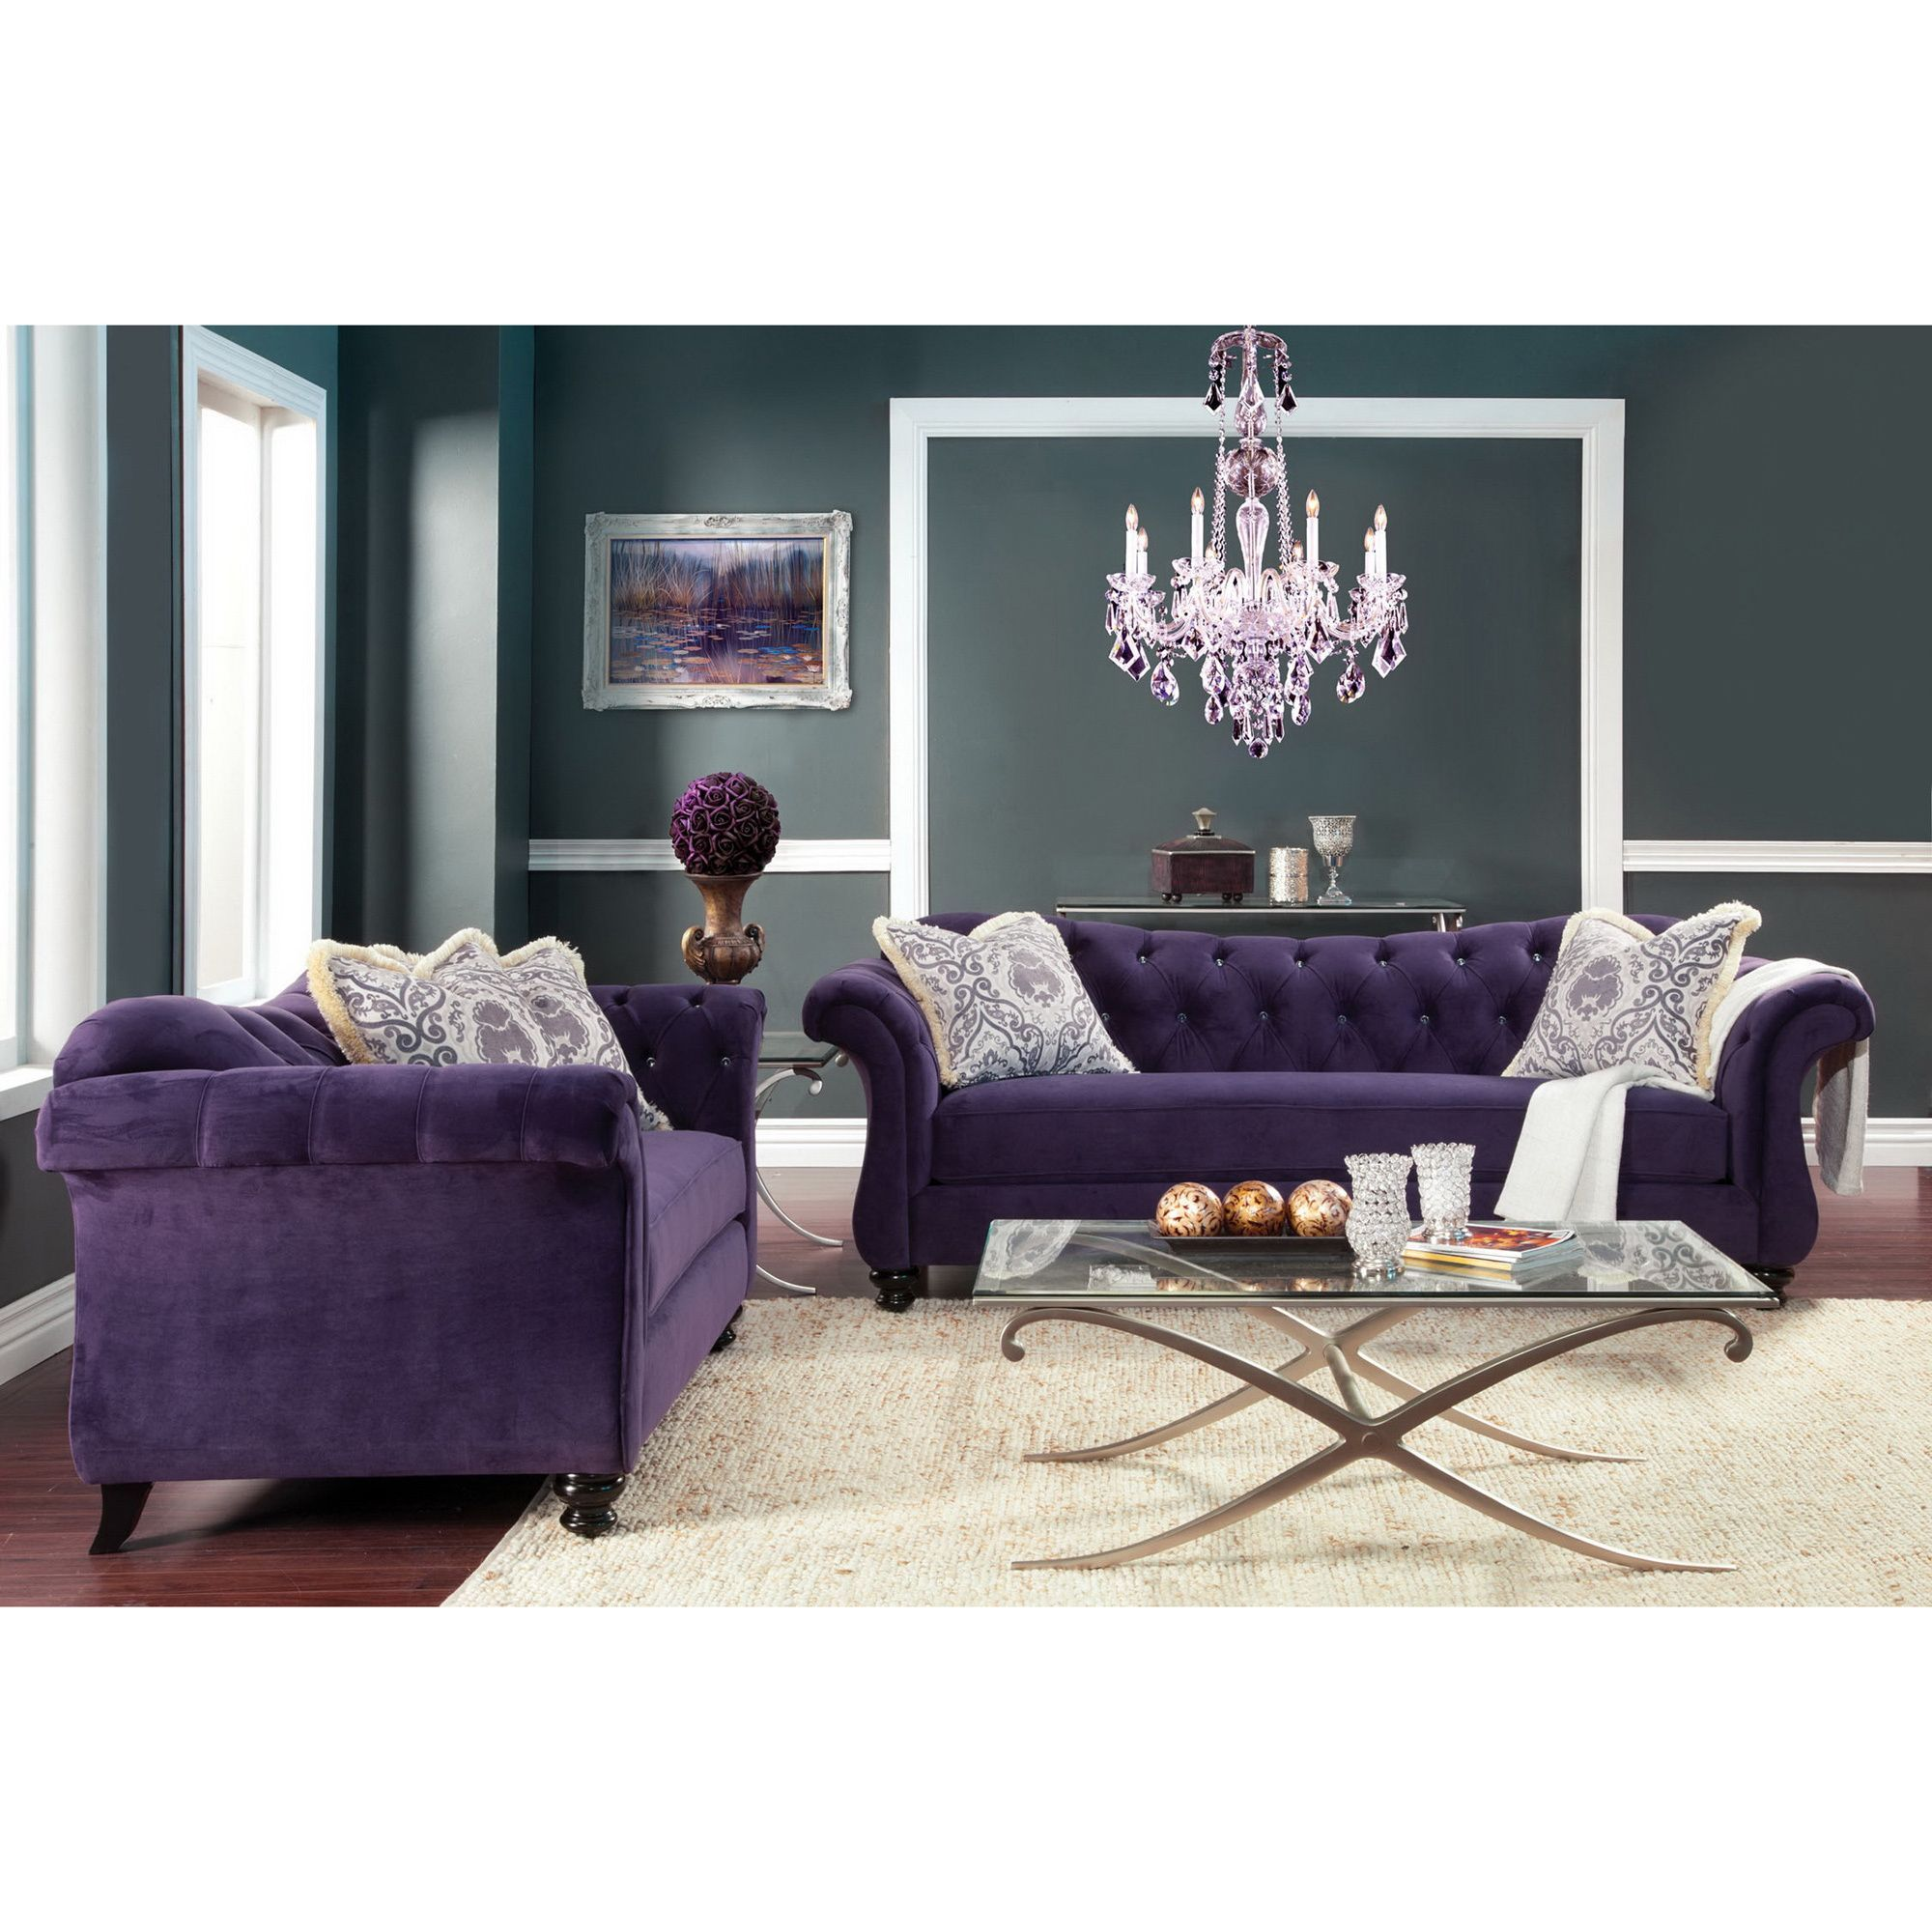 wayfair set piece reviews two roundhill pdx soprano living room furniture